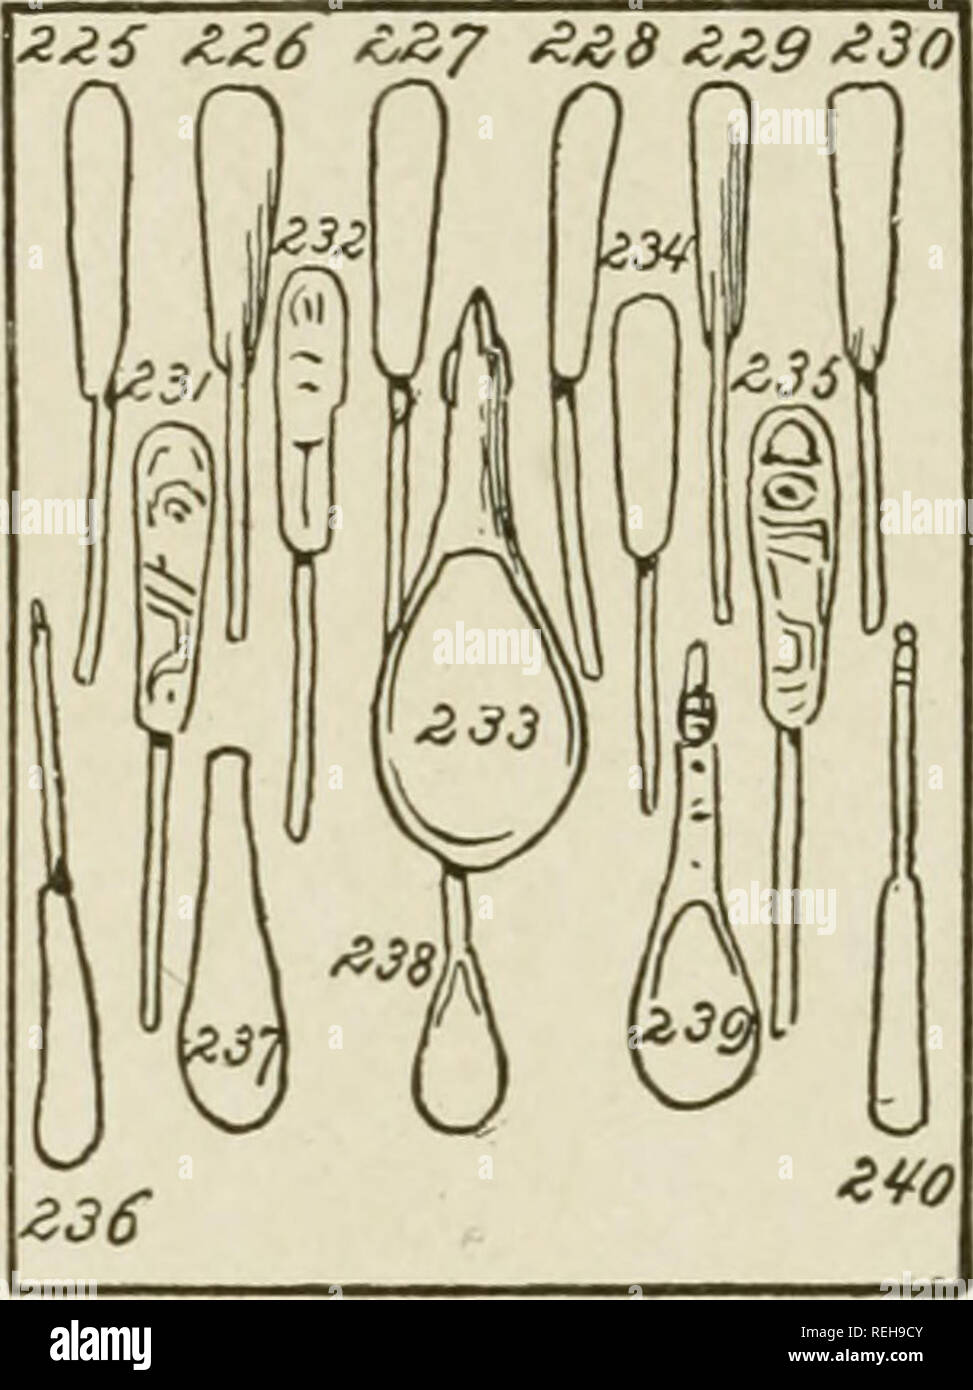 . The coast Indians of southern Alaska and northern British Columbia. Indians of North America; Indians of North America. EXPLANATION OF PLATE XLII.. Wooden Spoons from the Northwest Coast. Figs. 227, 229, 230, 236, and 240. Spoons. Of wood. Used especially for berries by all Northwest Indian ti-ibes. Cat. Nos. 20820-25, U. S. N, M. Kake Indians (Tlingits) Alaska. Collected by James G. Swan. Figs. 231, 232, and 235. Spoons. Of wood; painted. Cat. Nos. 1625:^-55, U. S. N. M. Tsimshian Indians, British Columbia. Collected by Dr. W. H. DaU. Pigs. 226, 227, 228, and 234. Spoons. Of wood; plain. Ca - Stock Image